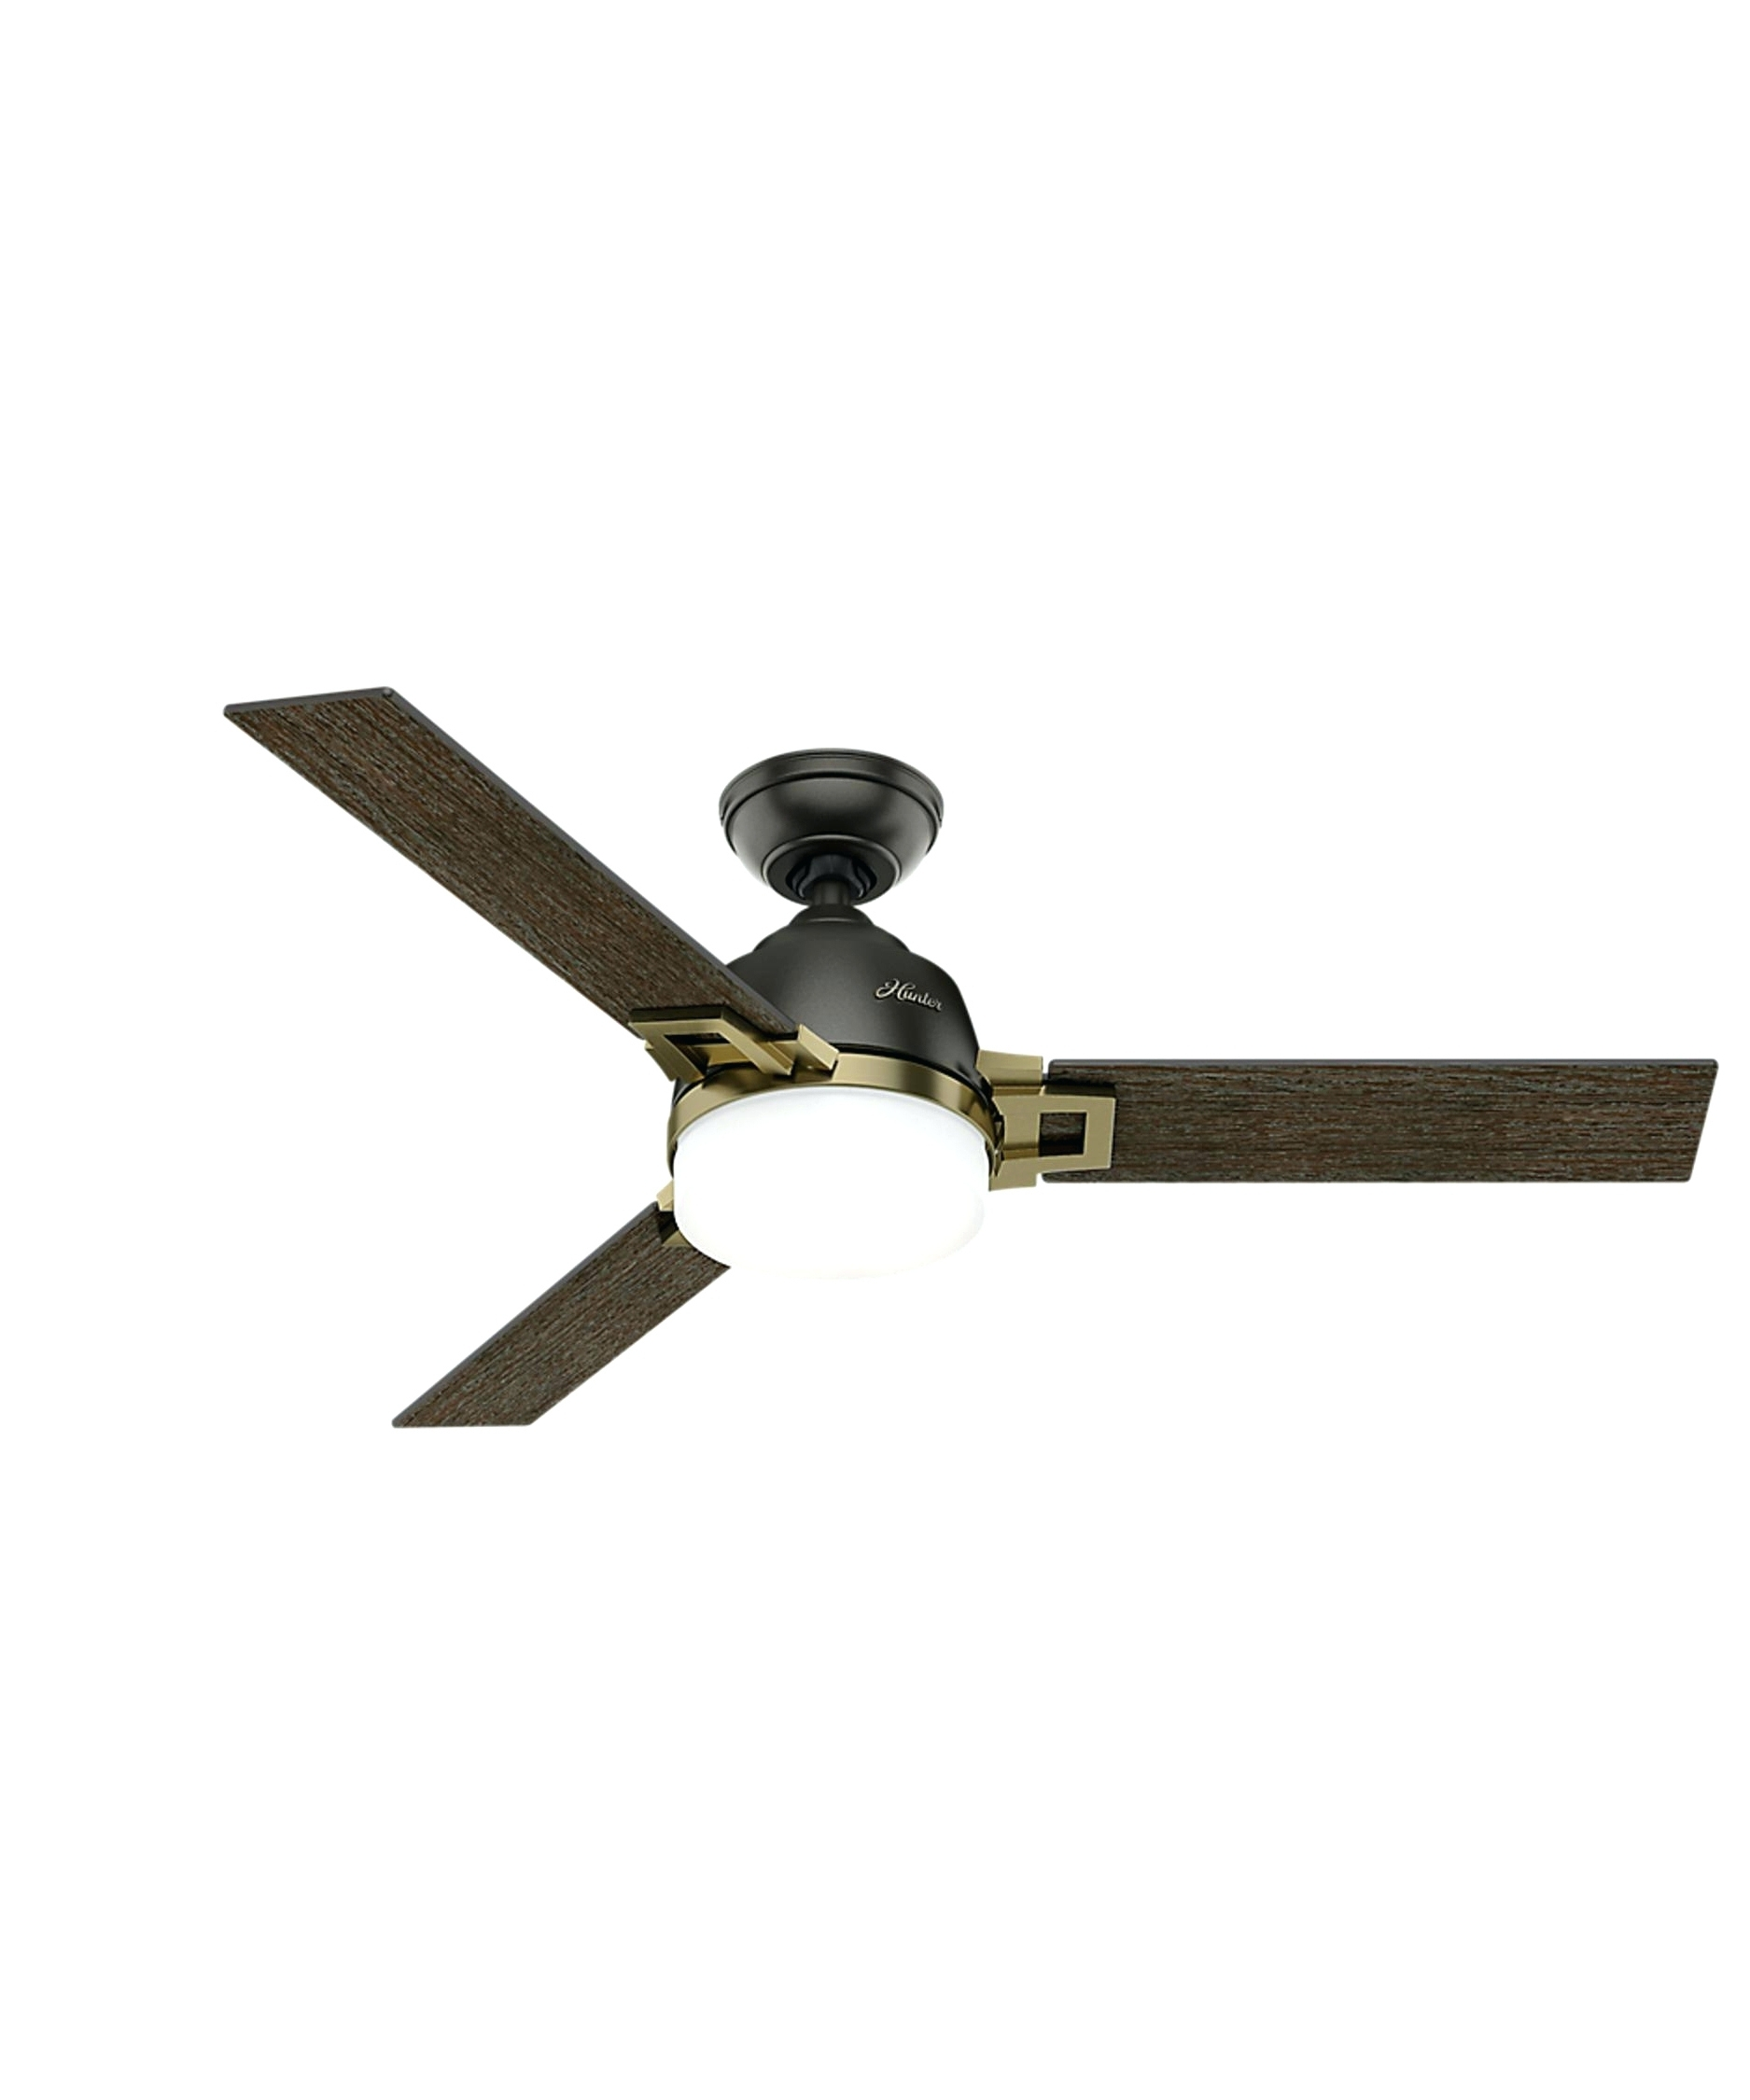 48 Inch Outdoor Ceiling Fans With Light Pertaining To Most Recently Released Best Inch Outdoor Ceiling Fan Ideas Inch Outdoor Fan 72 Of 60 Remote (Gallery 15 of 20)